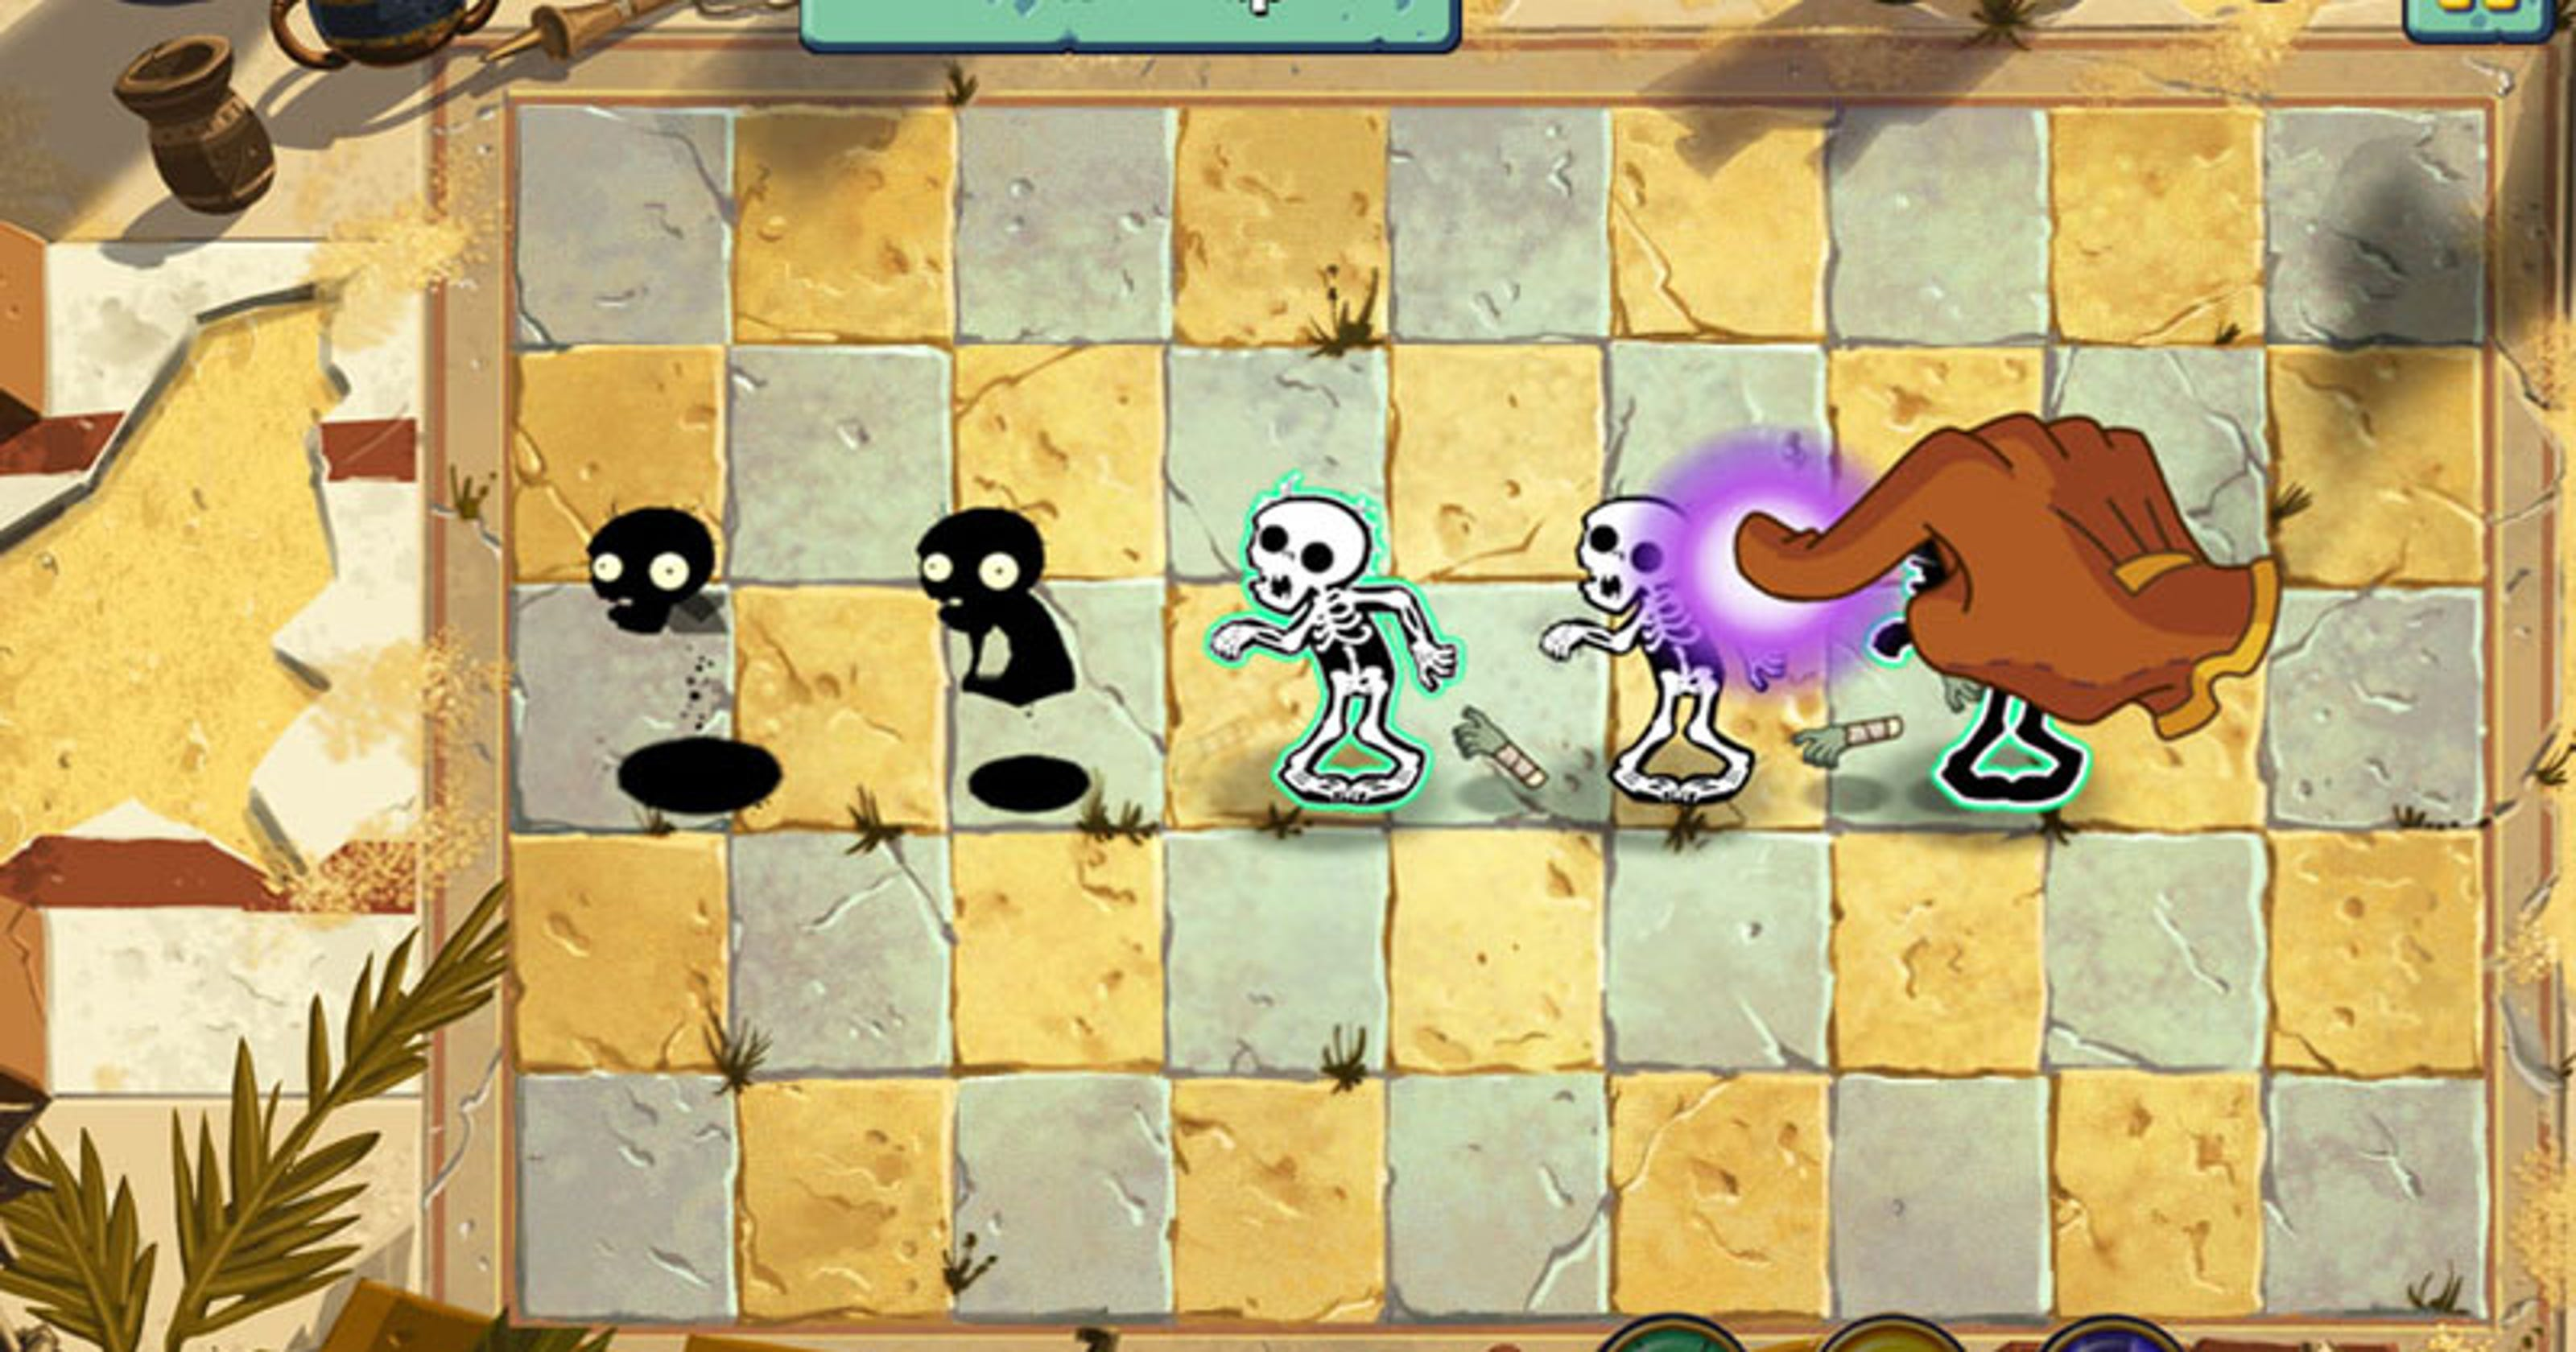 20 tips to mastering 'Plants vs  Zombies 2'